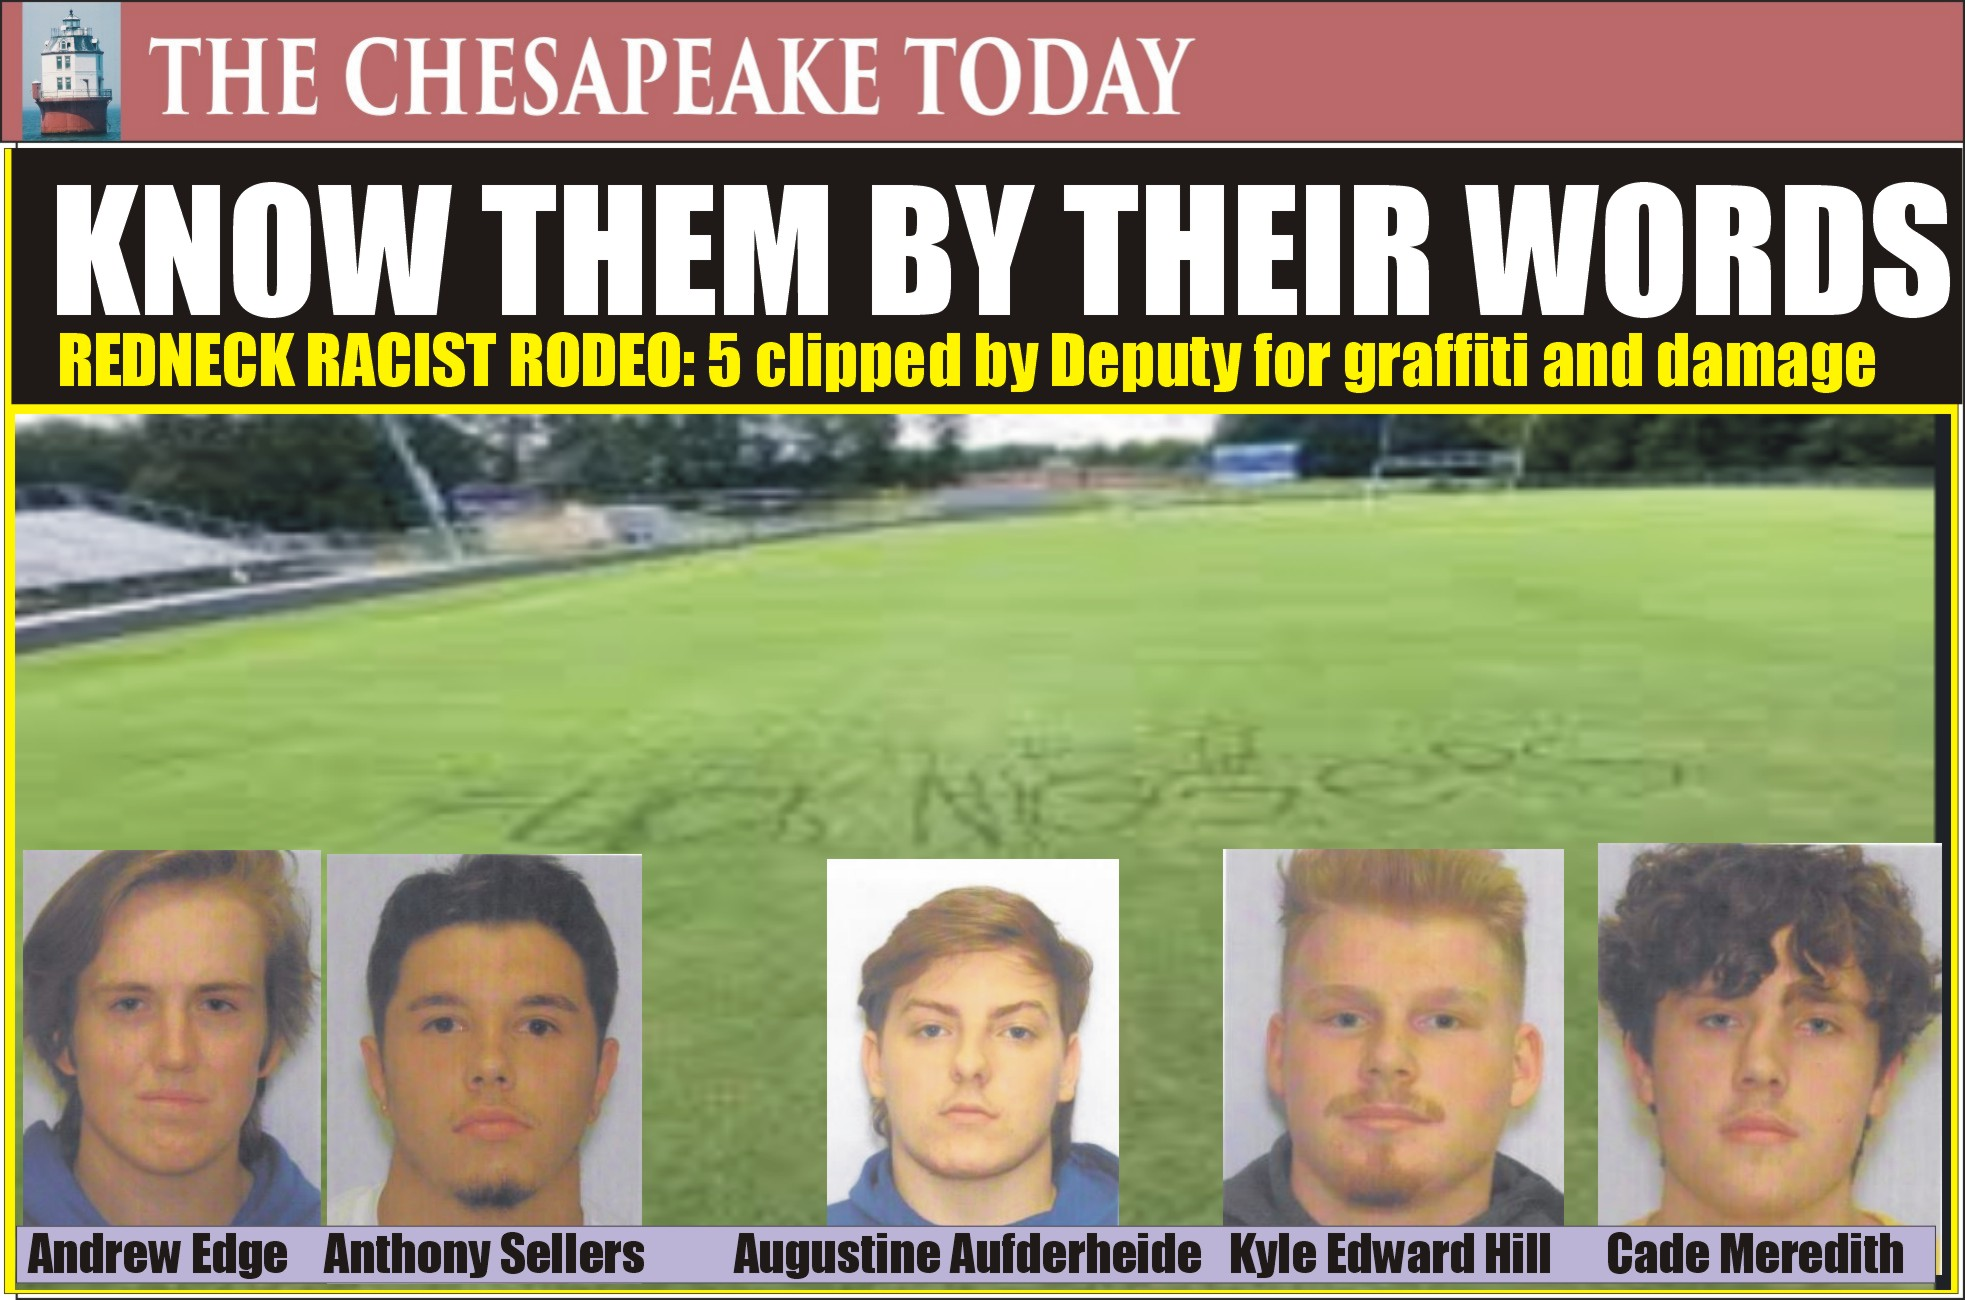 REDNECK RACIST ROUNDUP: Five Men Charged with Burglary & Property Destruction in Painting Racist Rant on Football Field at Calvert High School